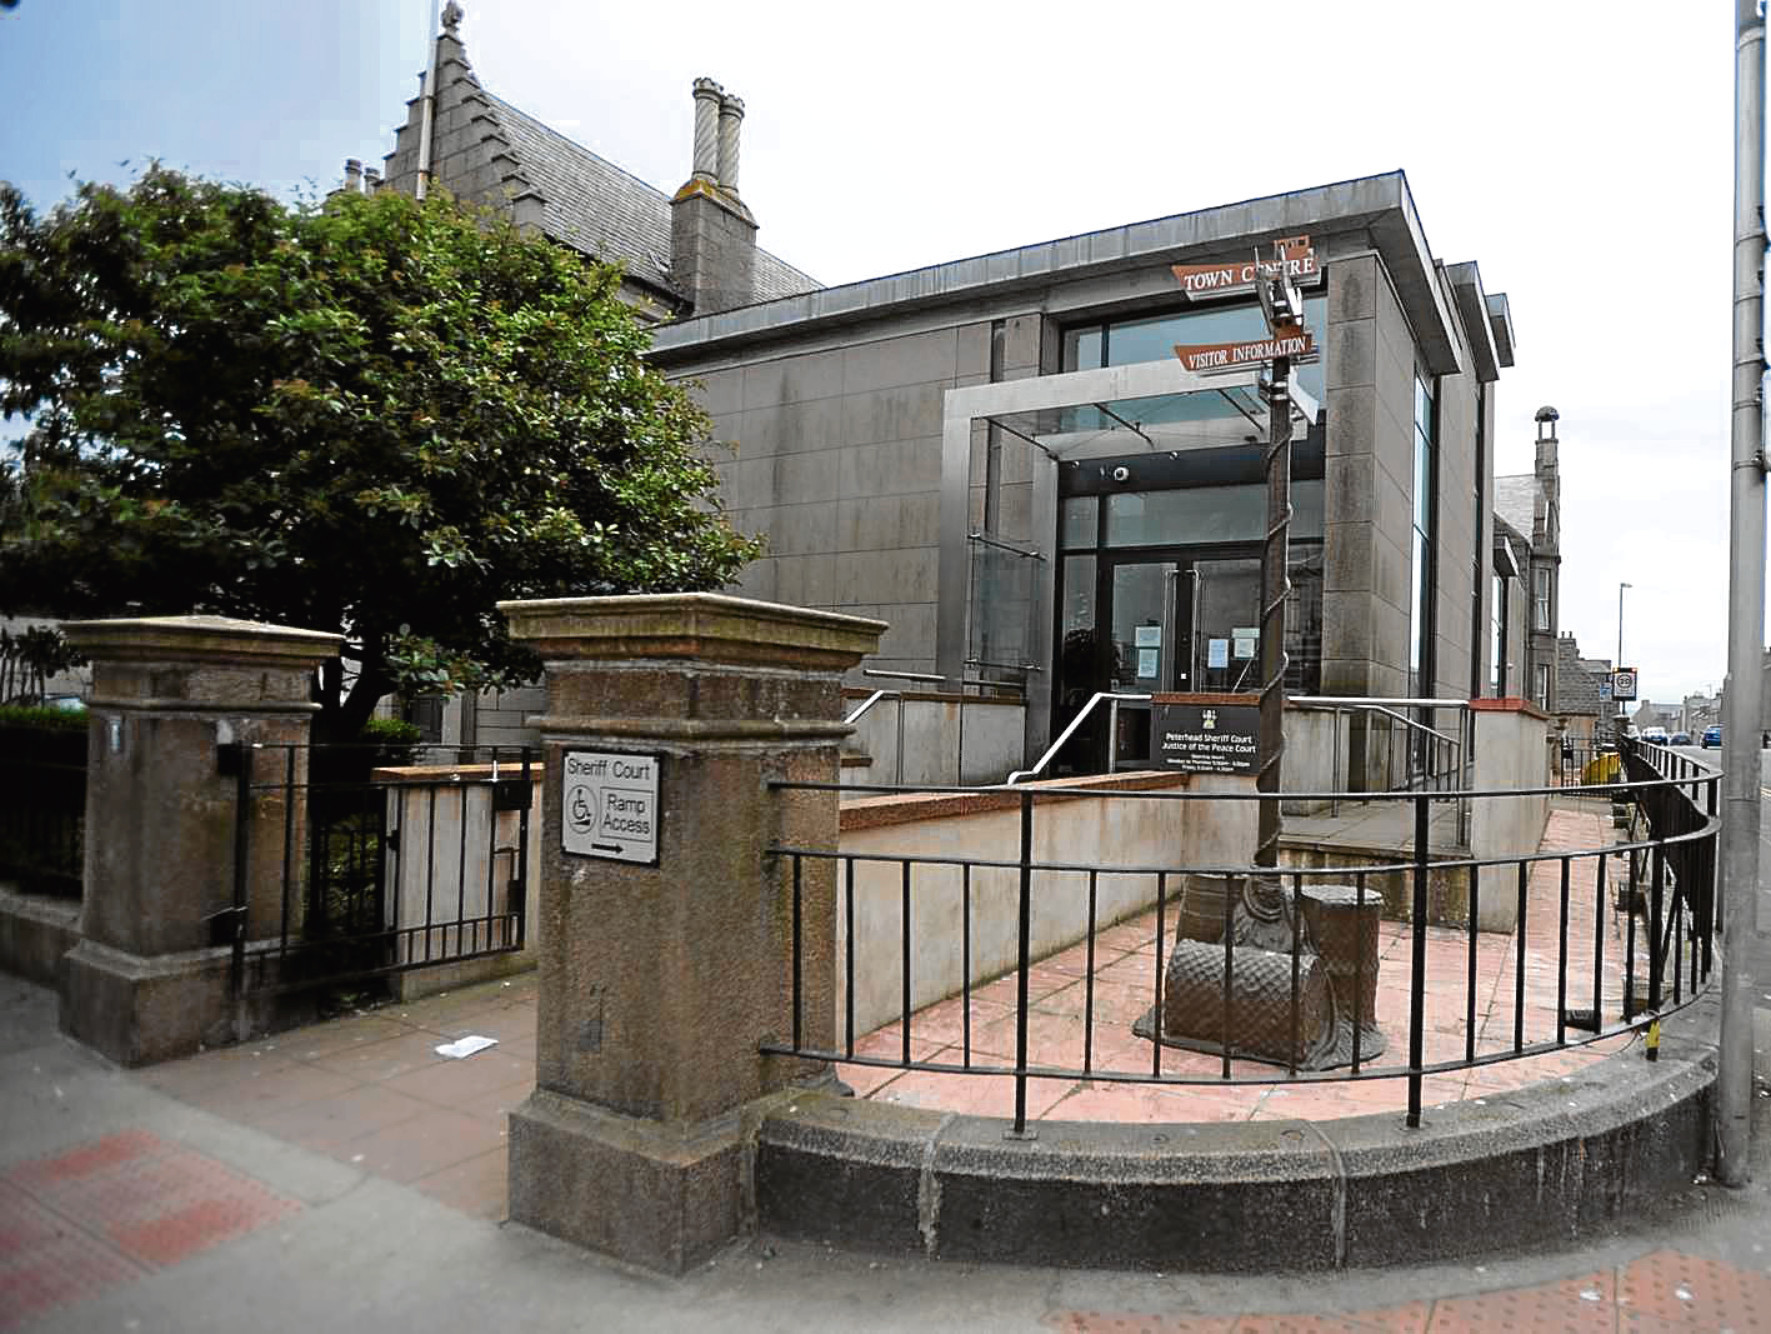 A 35-year-old from Sheffield is due to appear at Peterhead Sheriff Court today.